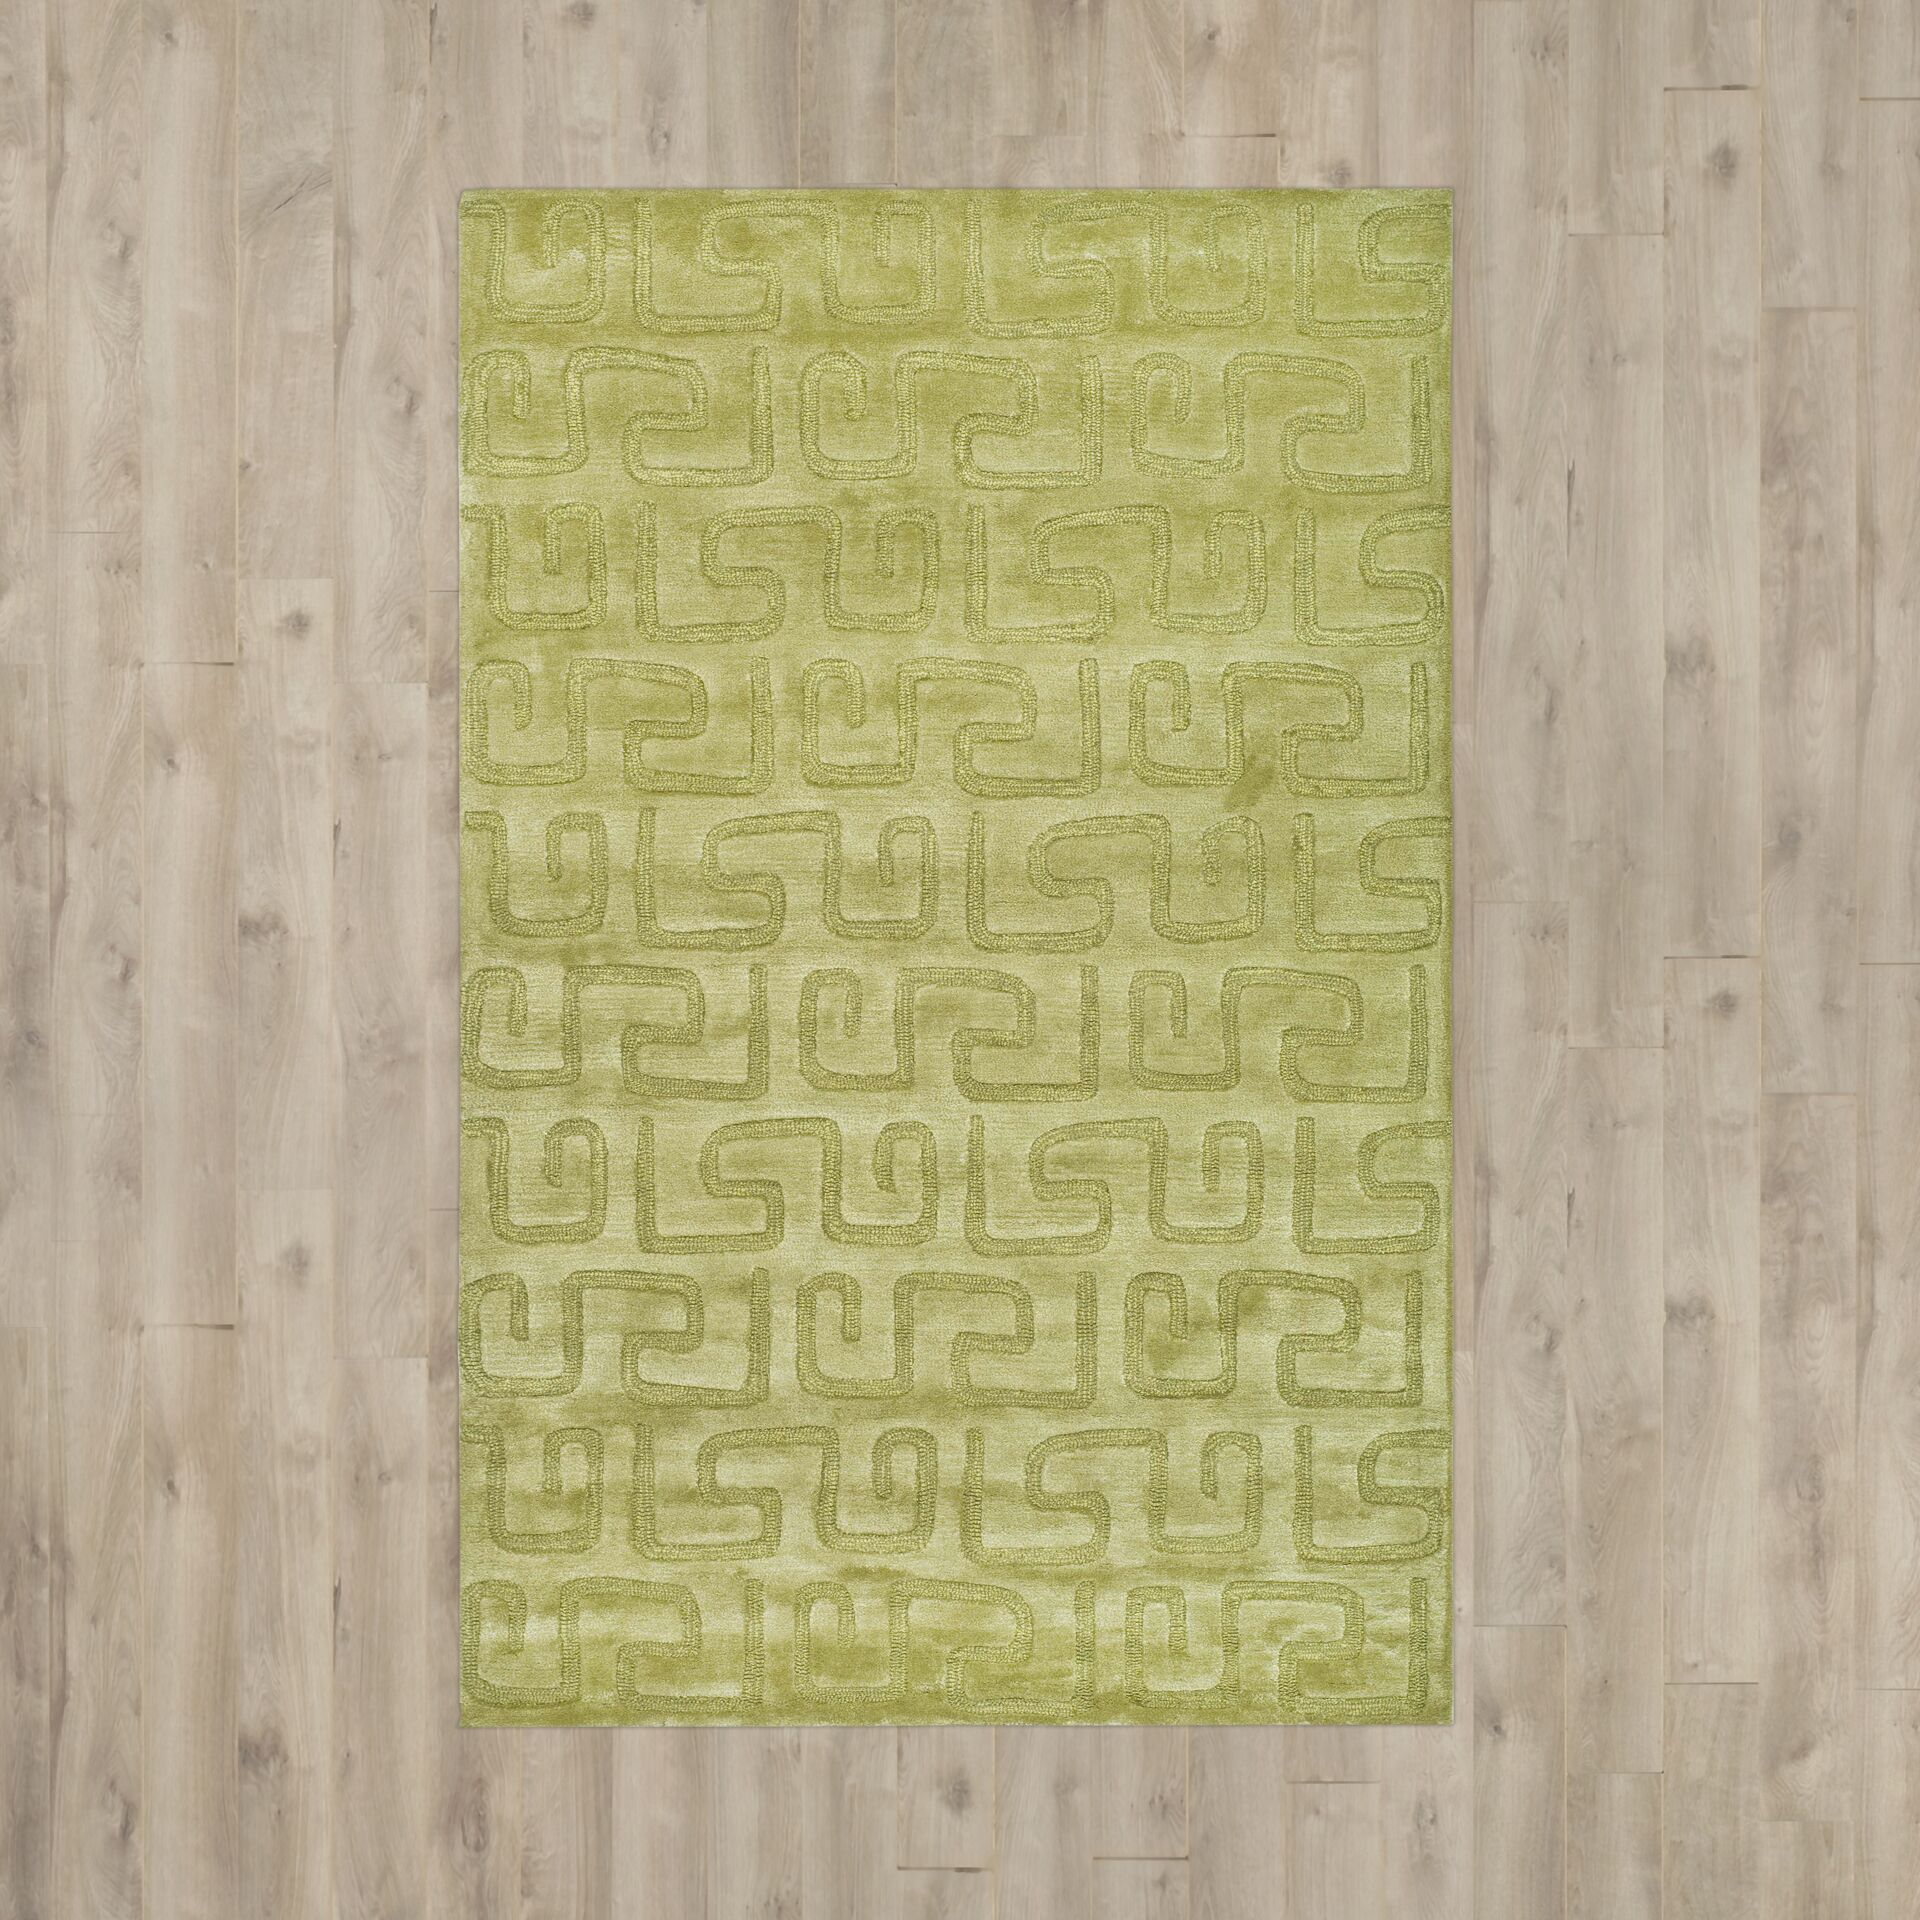 Armstrong Hand-Tufted Green Area Rug Rug Size: Rectangle 7'6